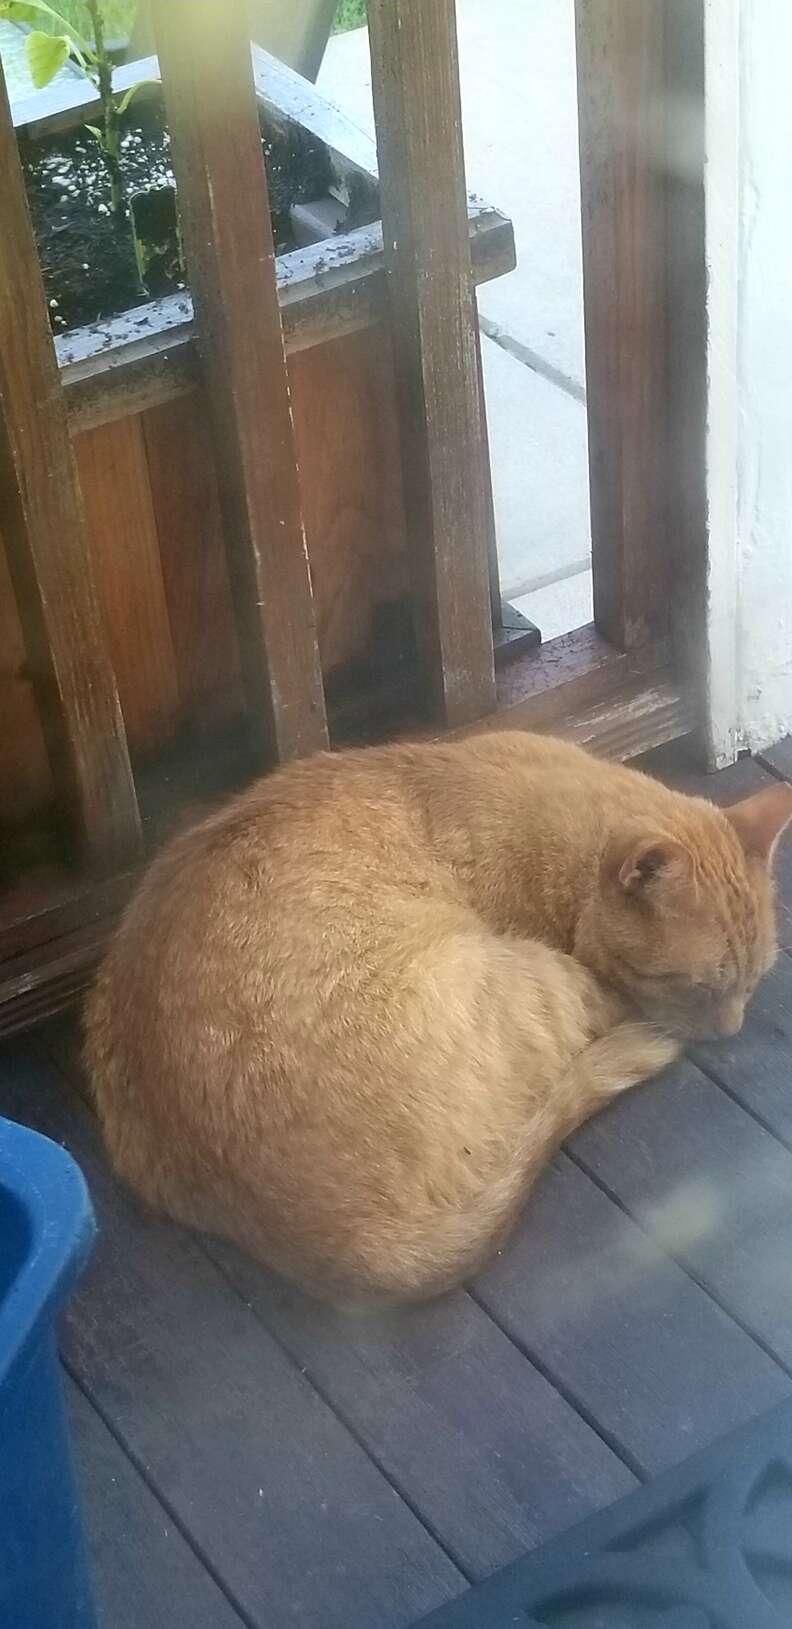 Street cat in Boston shows up on porch